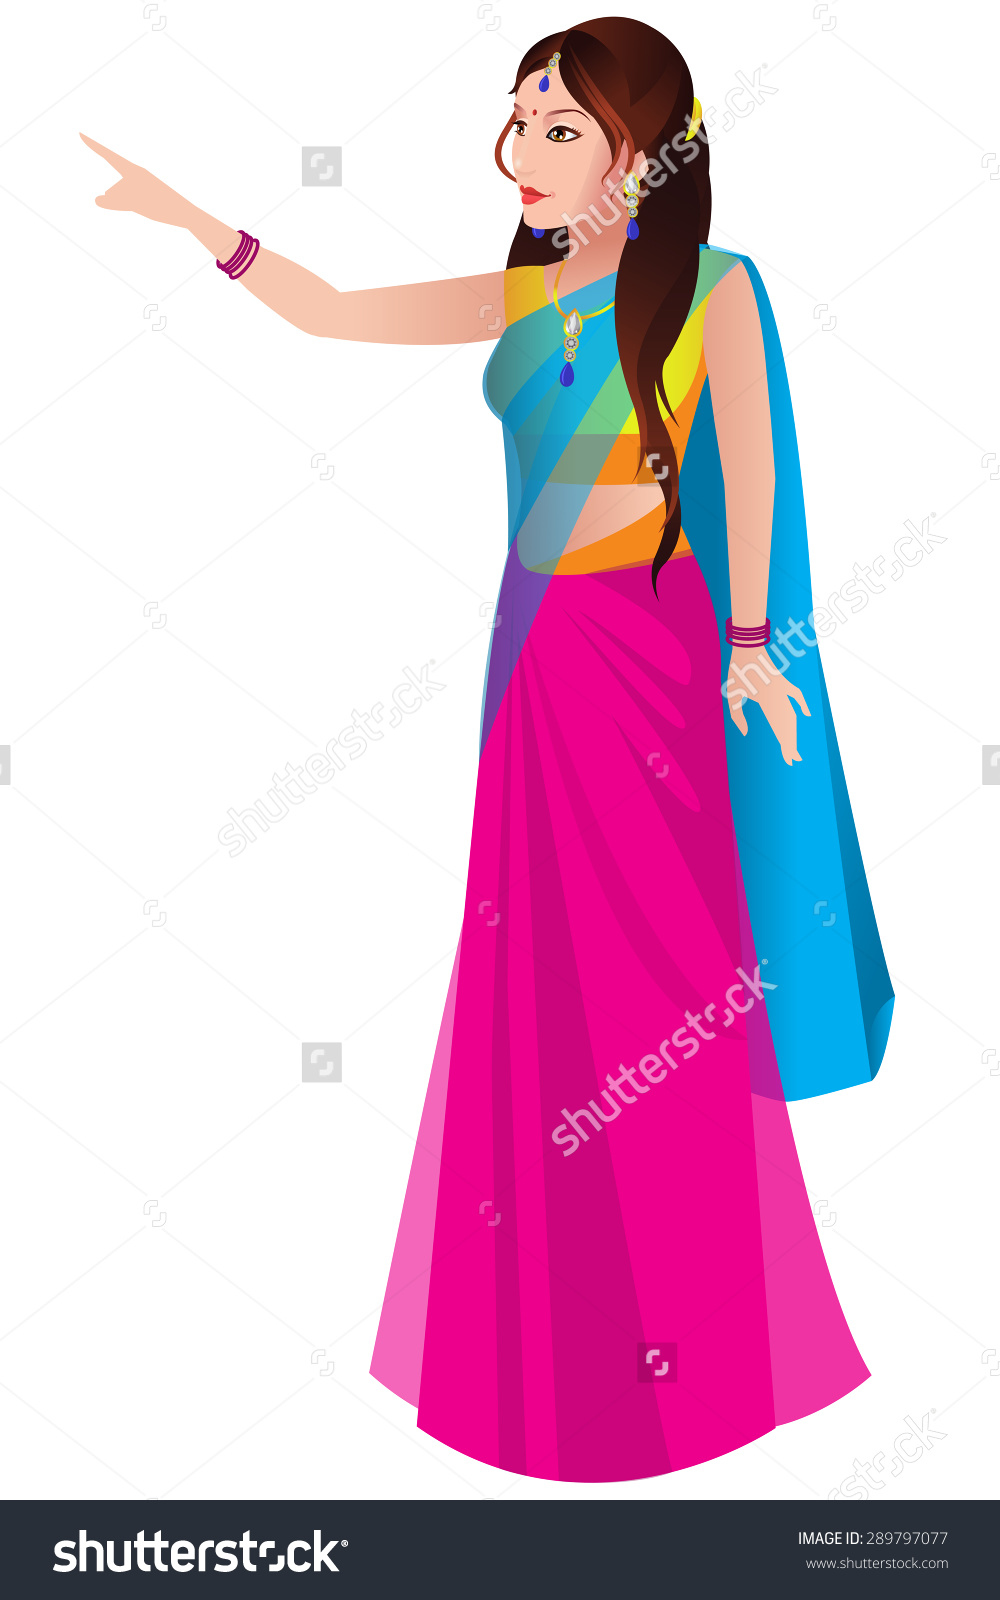 Saree clipart traditional indian lady #11